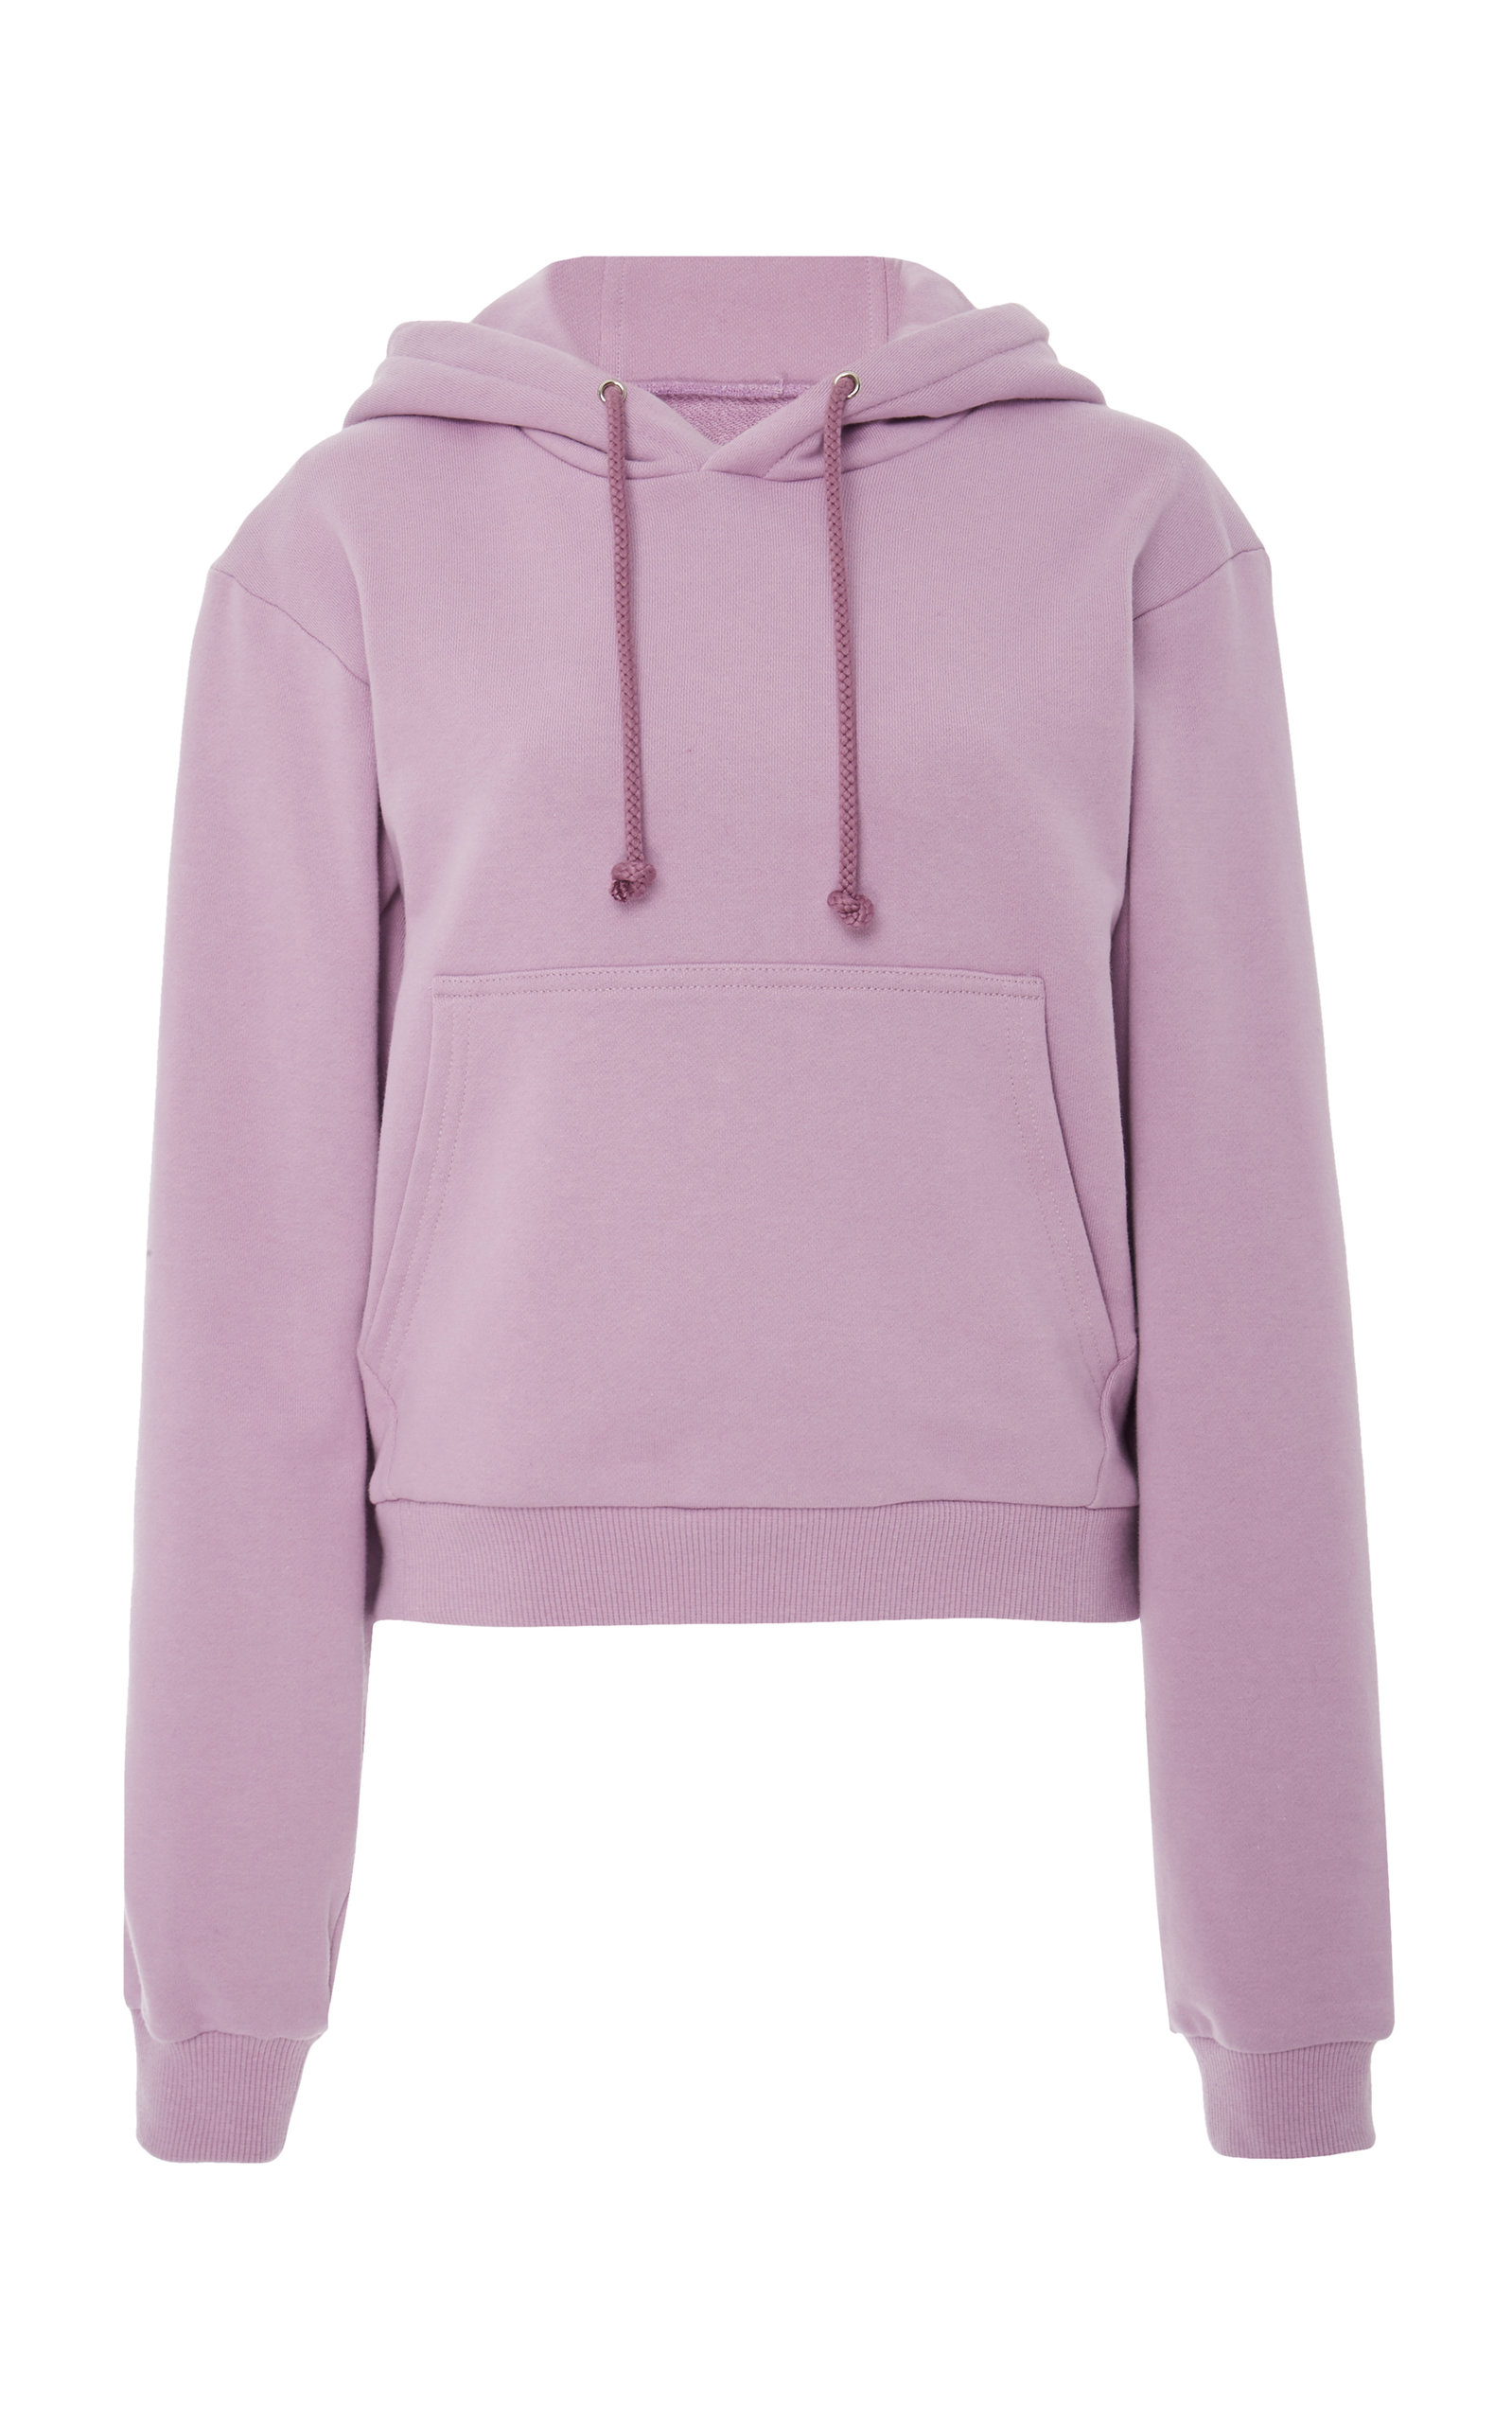 Matthew Adams Dolan Tops COTTON FRENCH TERRY HOODIE